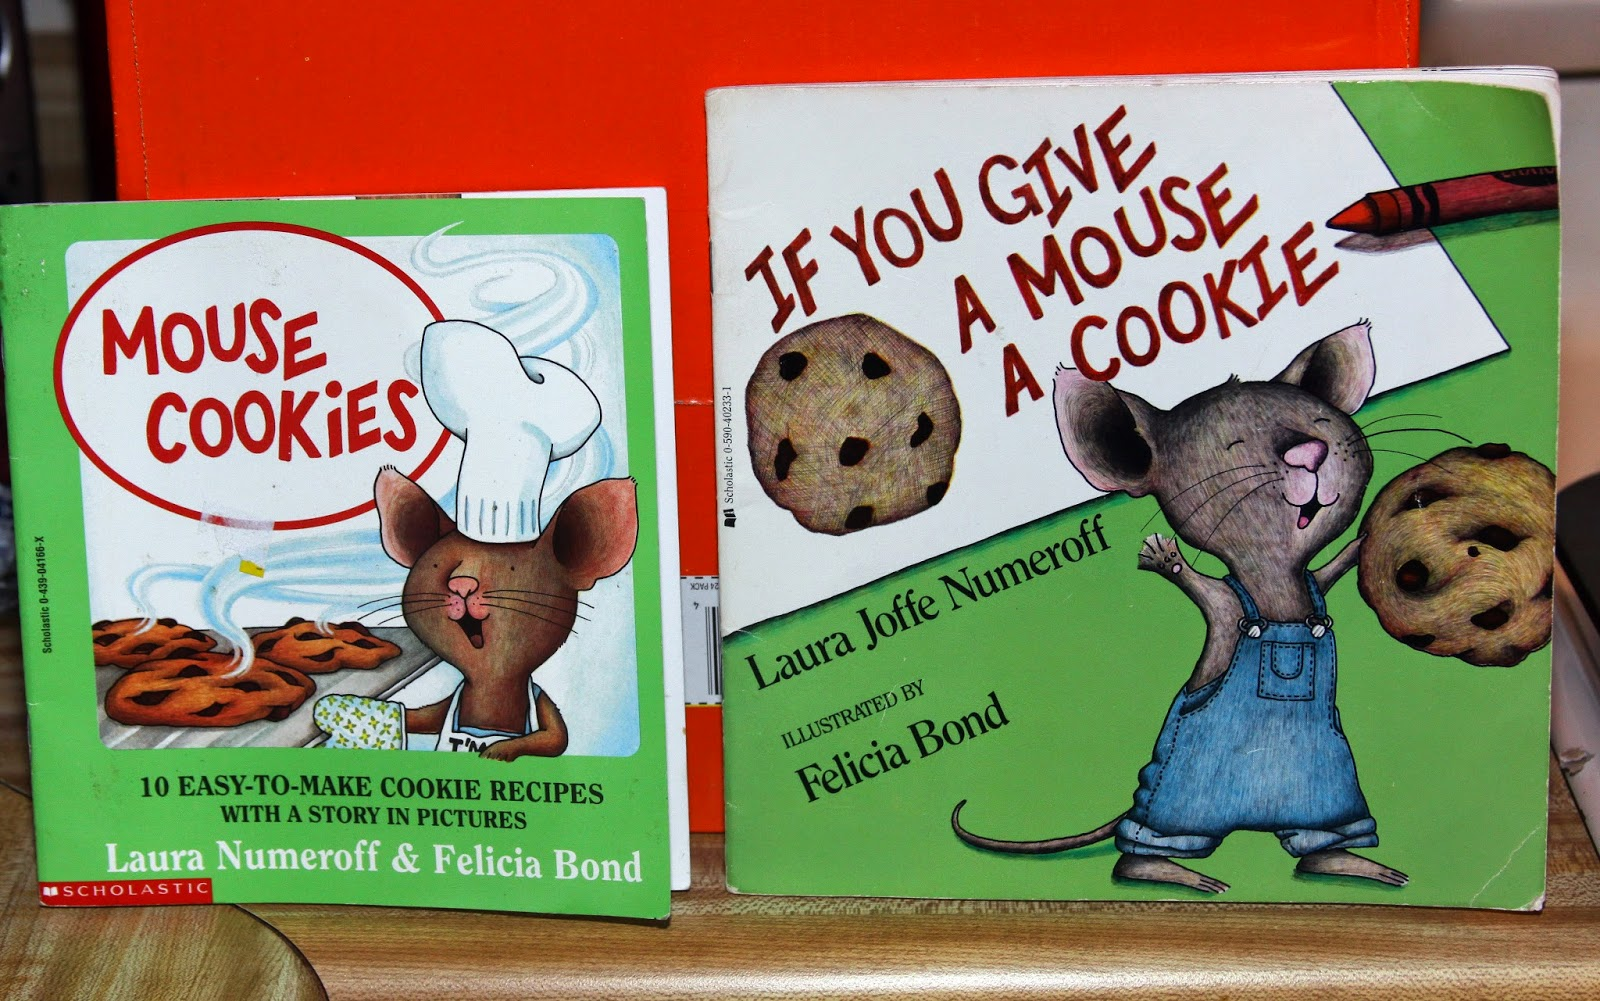 Mouse Cookies Cookbook